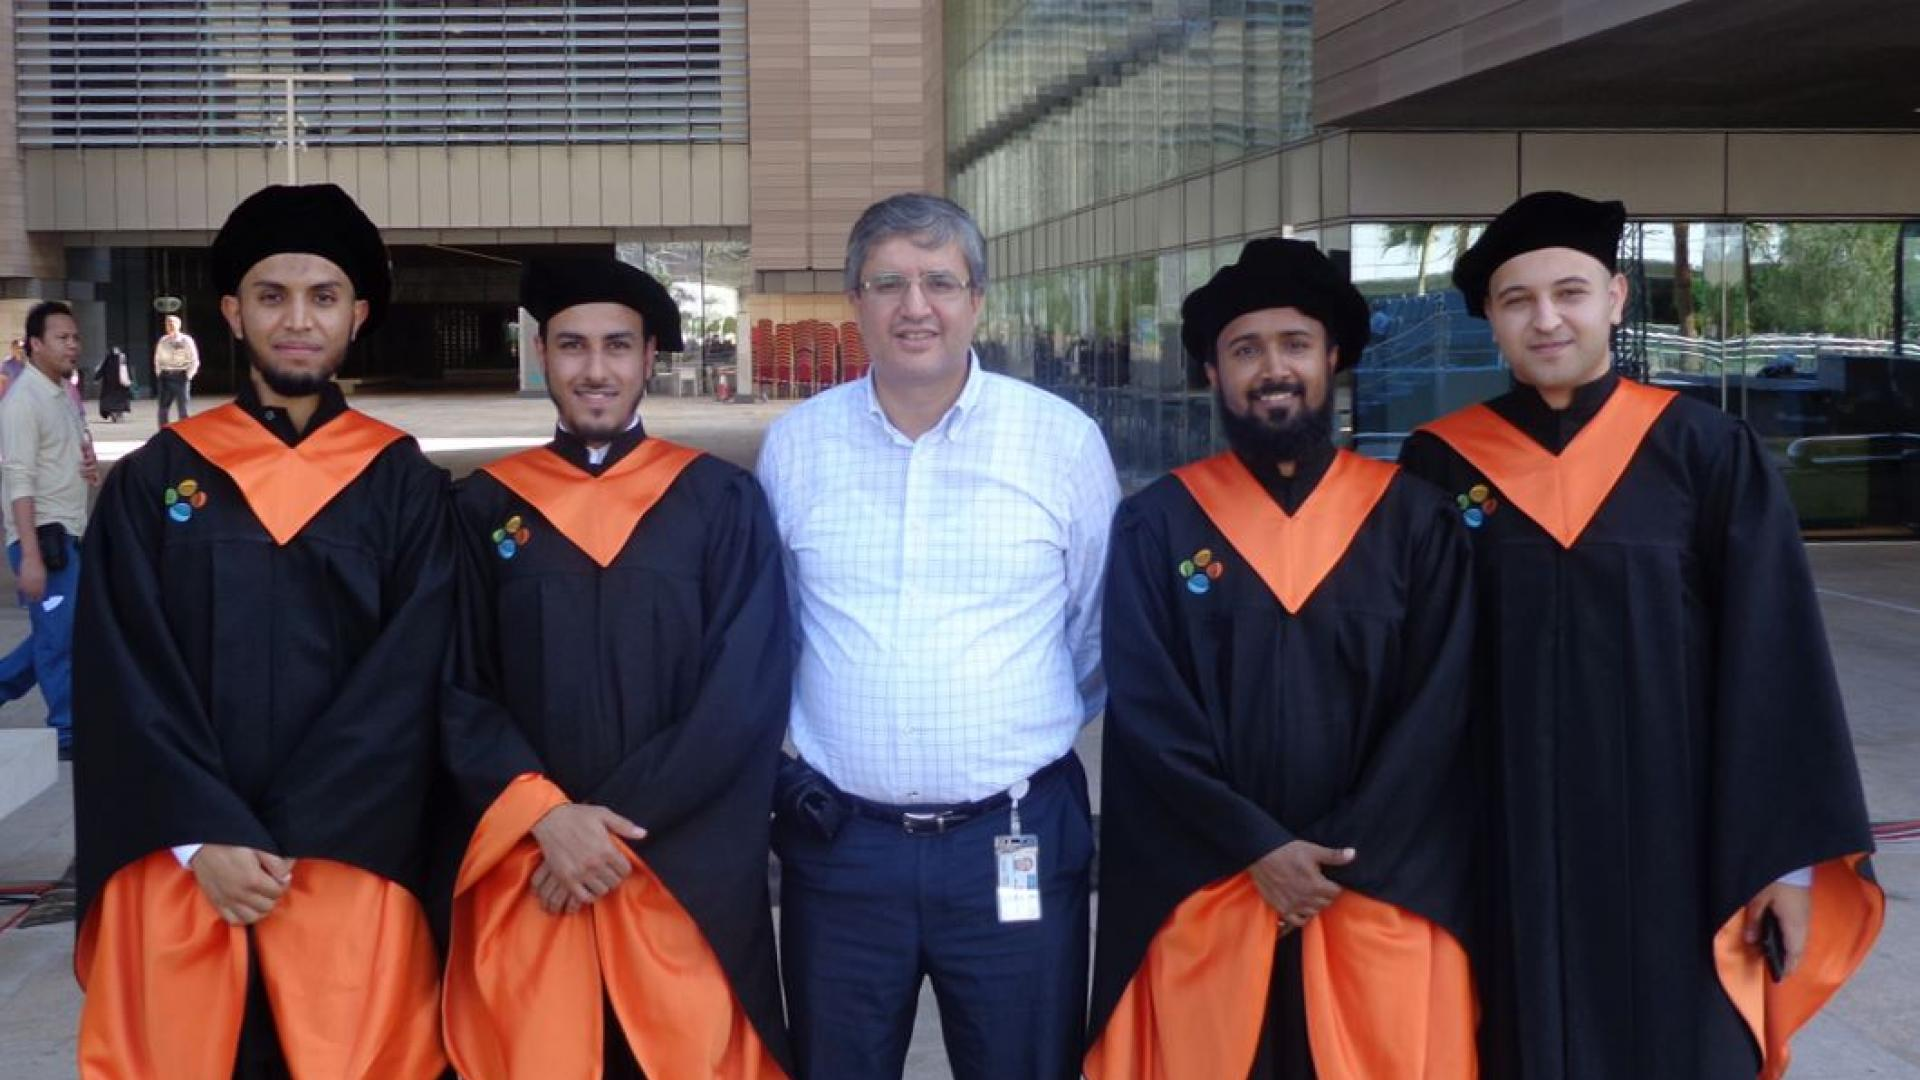 Professor Alouini with Master Students; Lokman Sboui, Abdullatif Rabah, Hussain Shibli and Ahmad AlSharoa during graduation ceremony Dec 2012